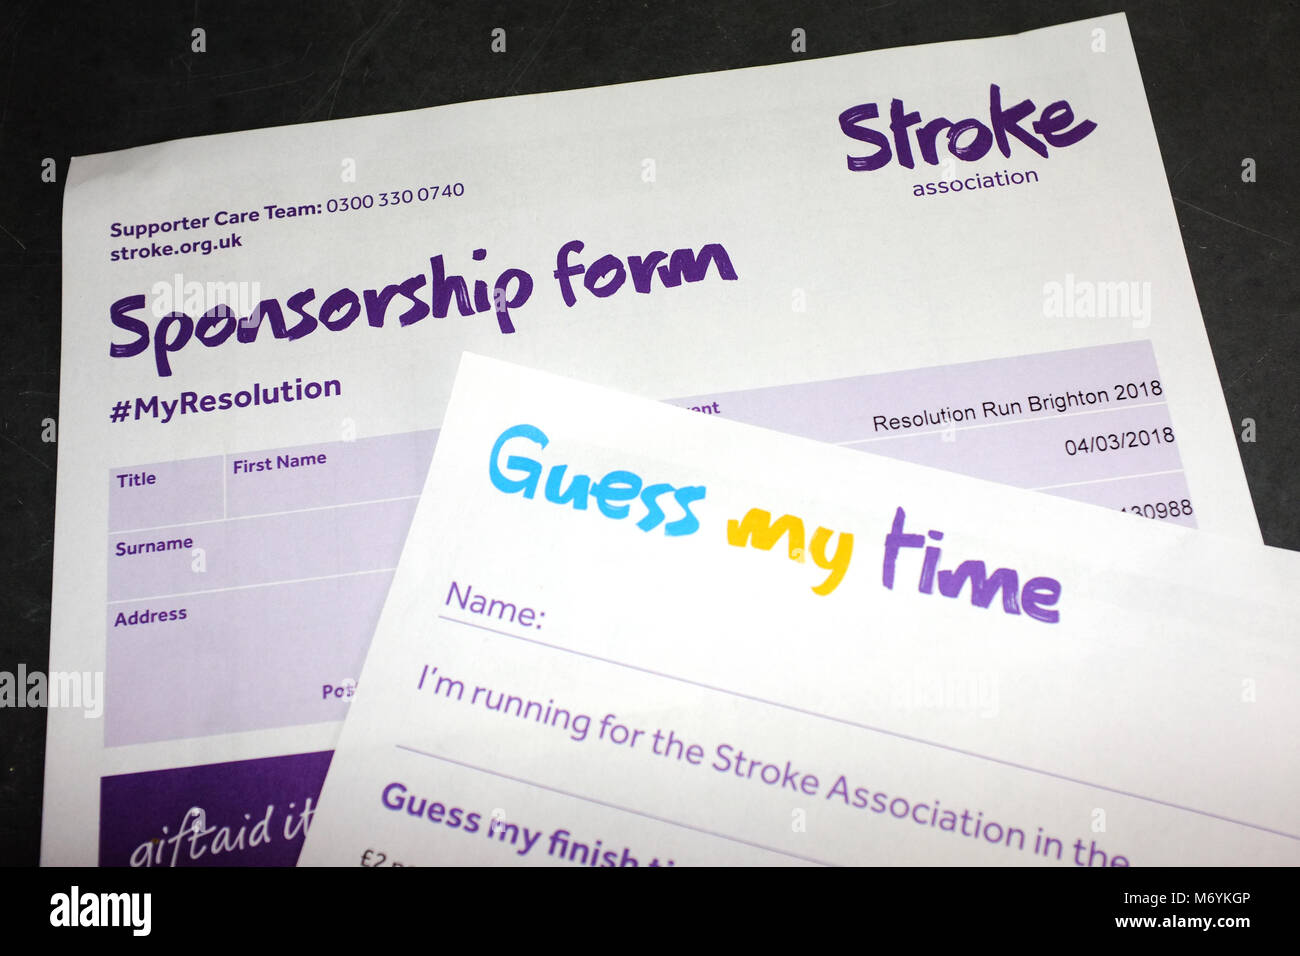 Documents from the Stroke Association Resolution Run charity event. - Stock Image